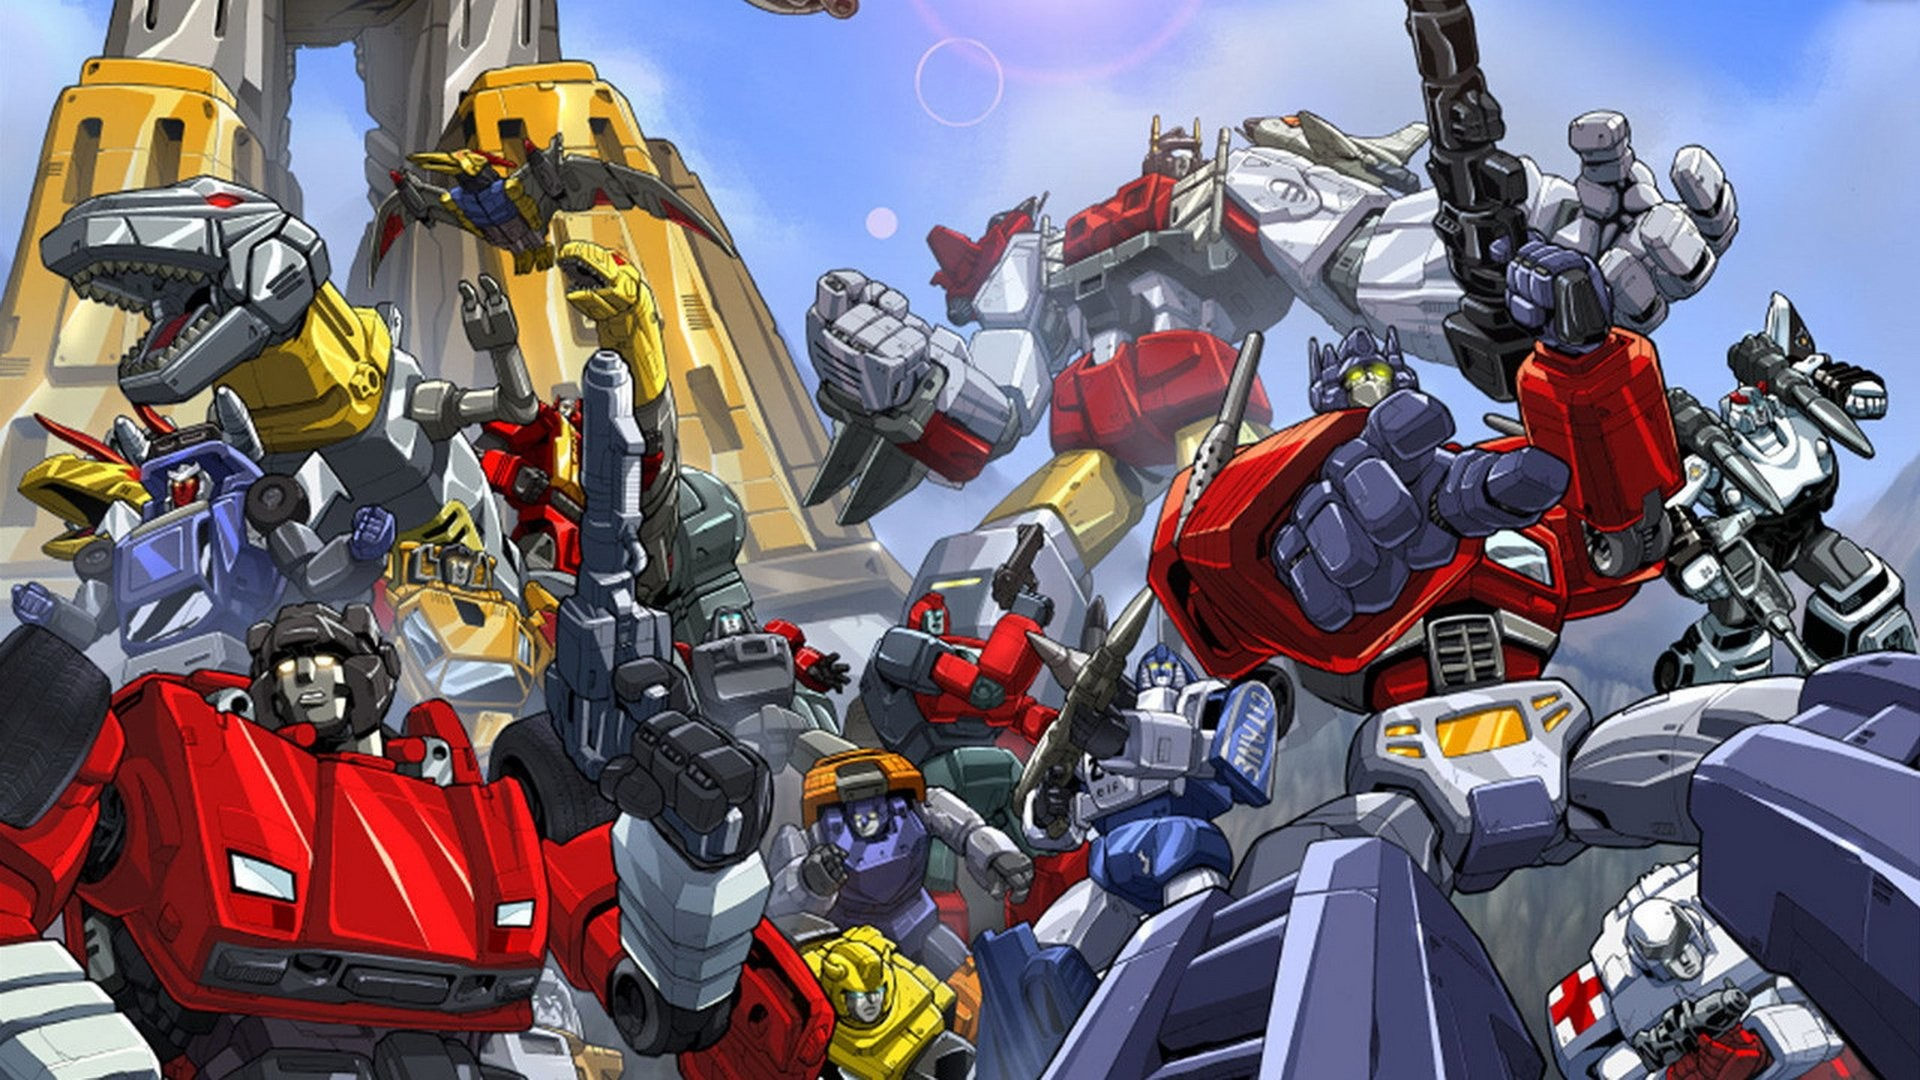 Transformers Prime Wallpaper Hd 73 Images